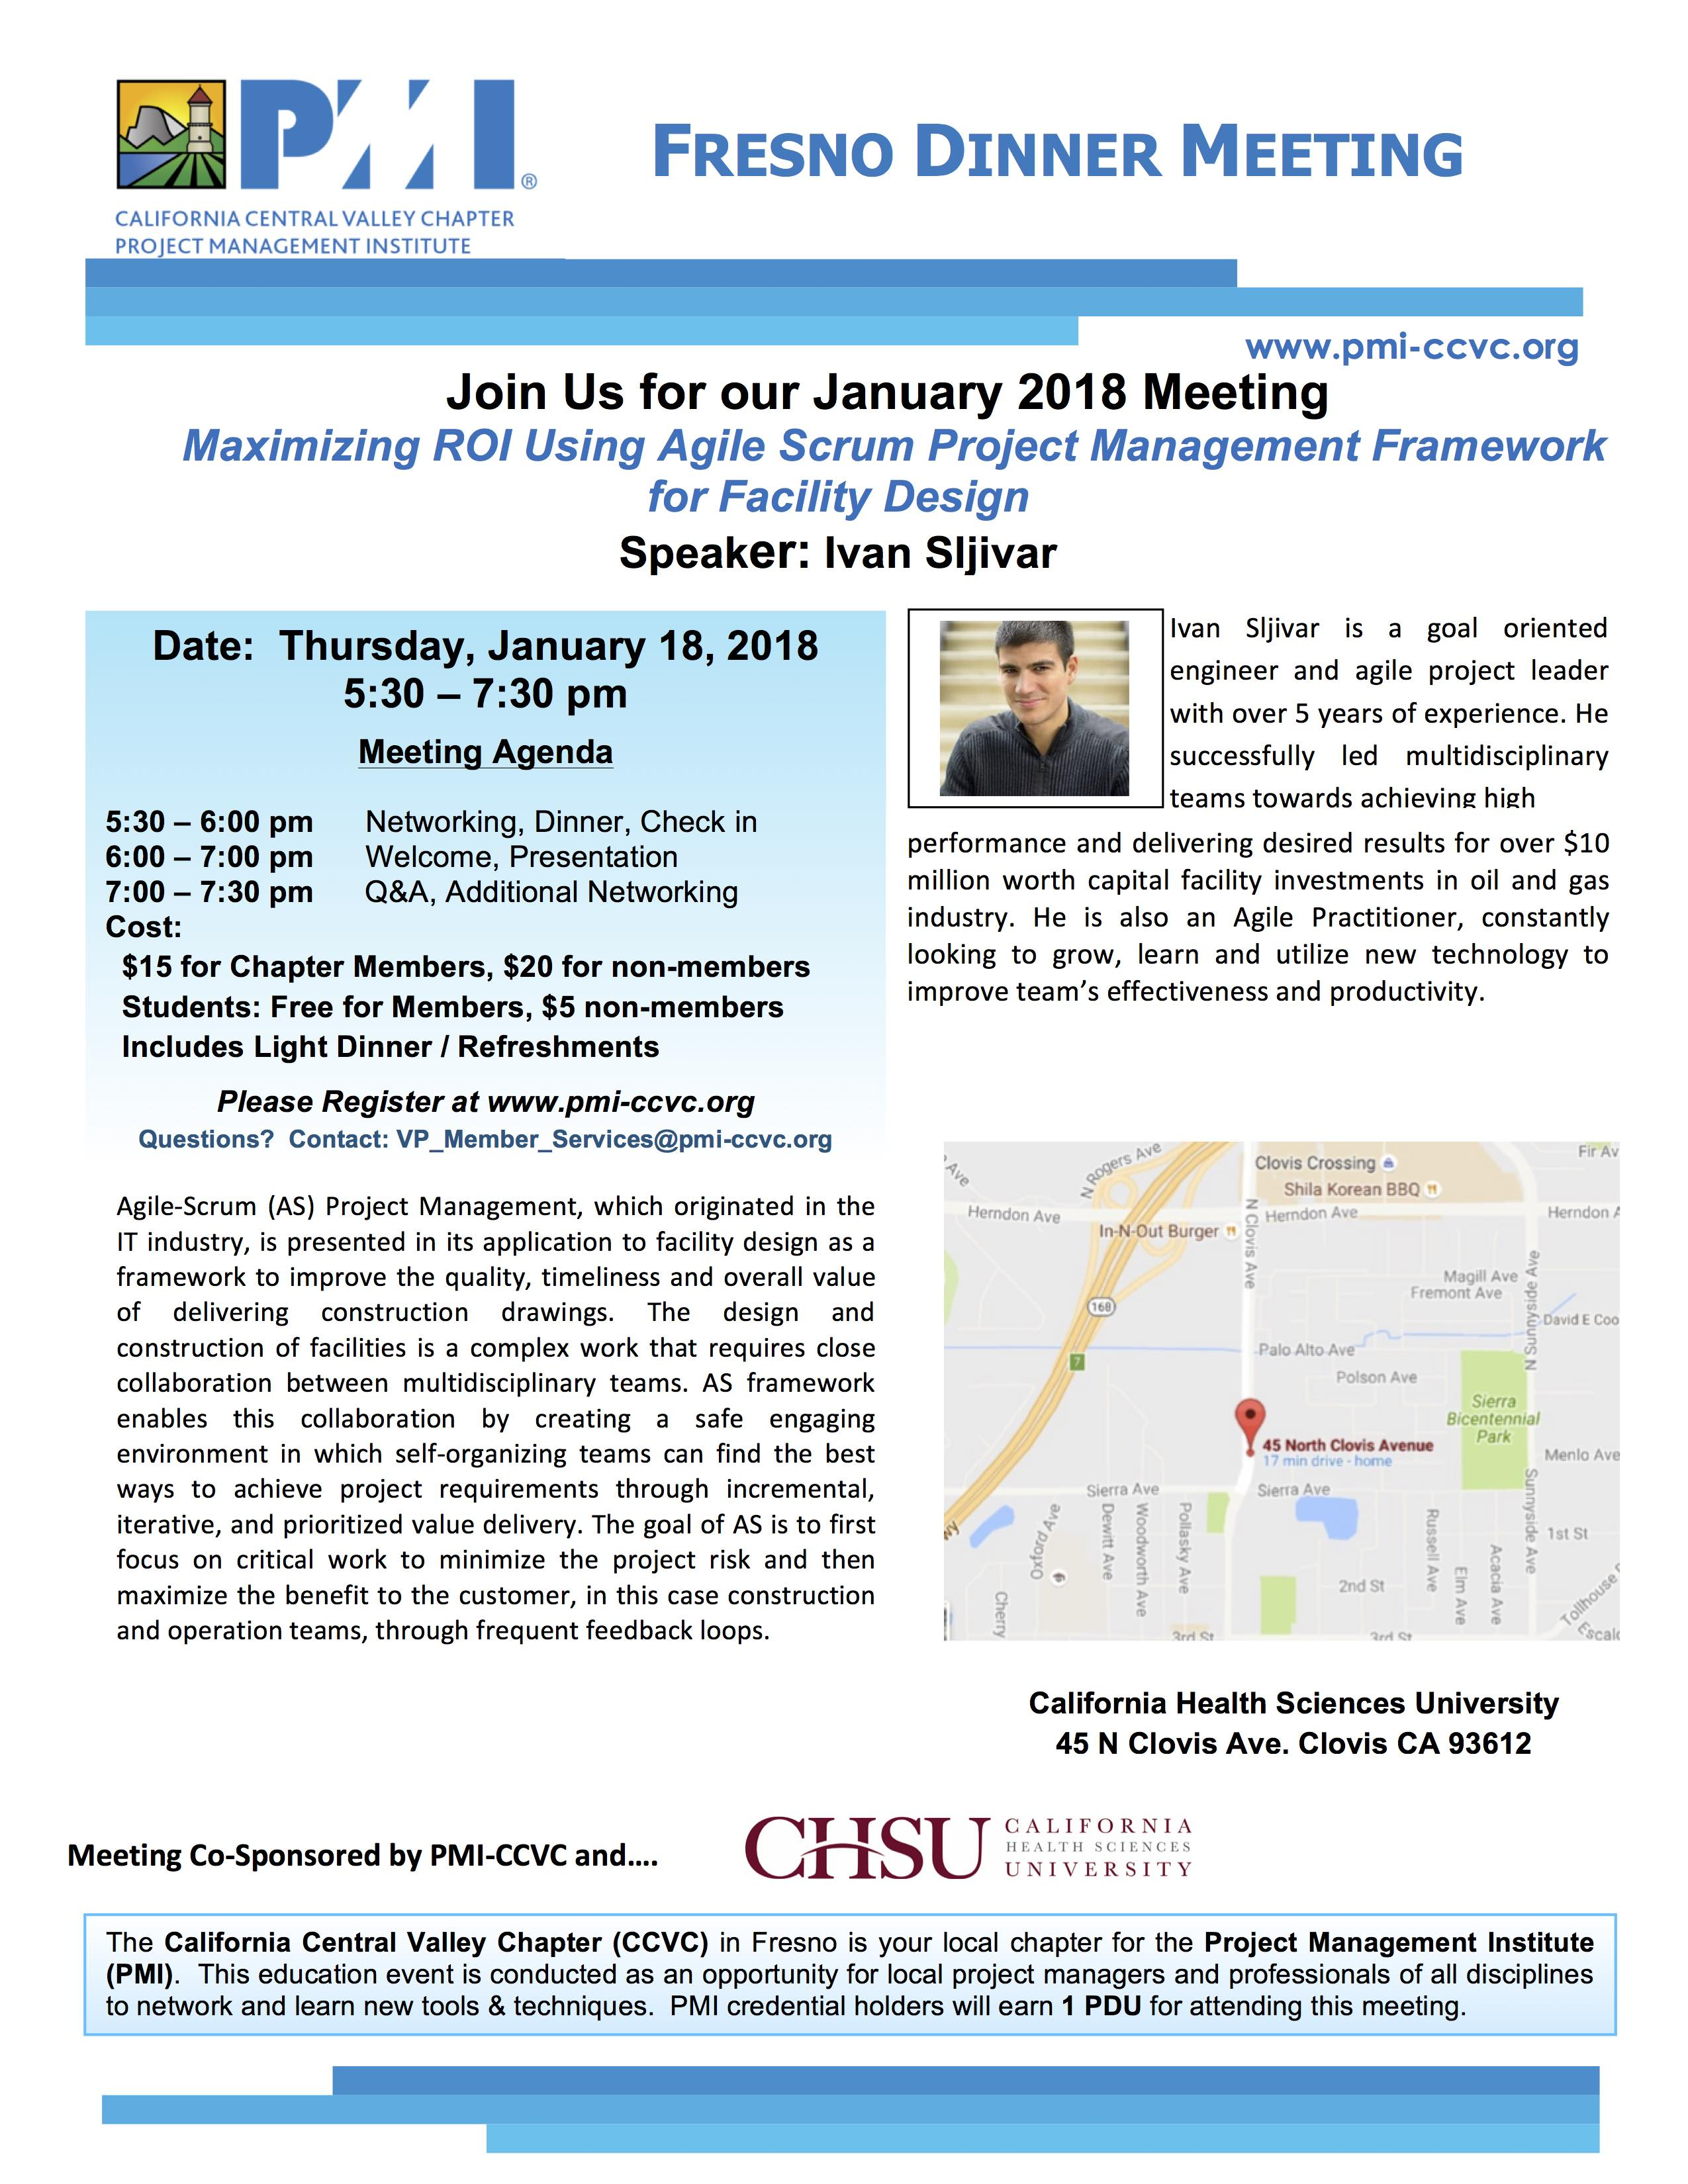 January 18 2018 Fresno Dinner Meeting Flyer